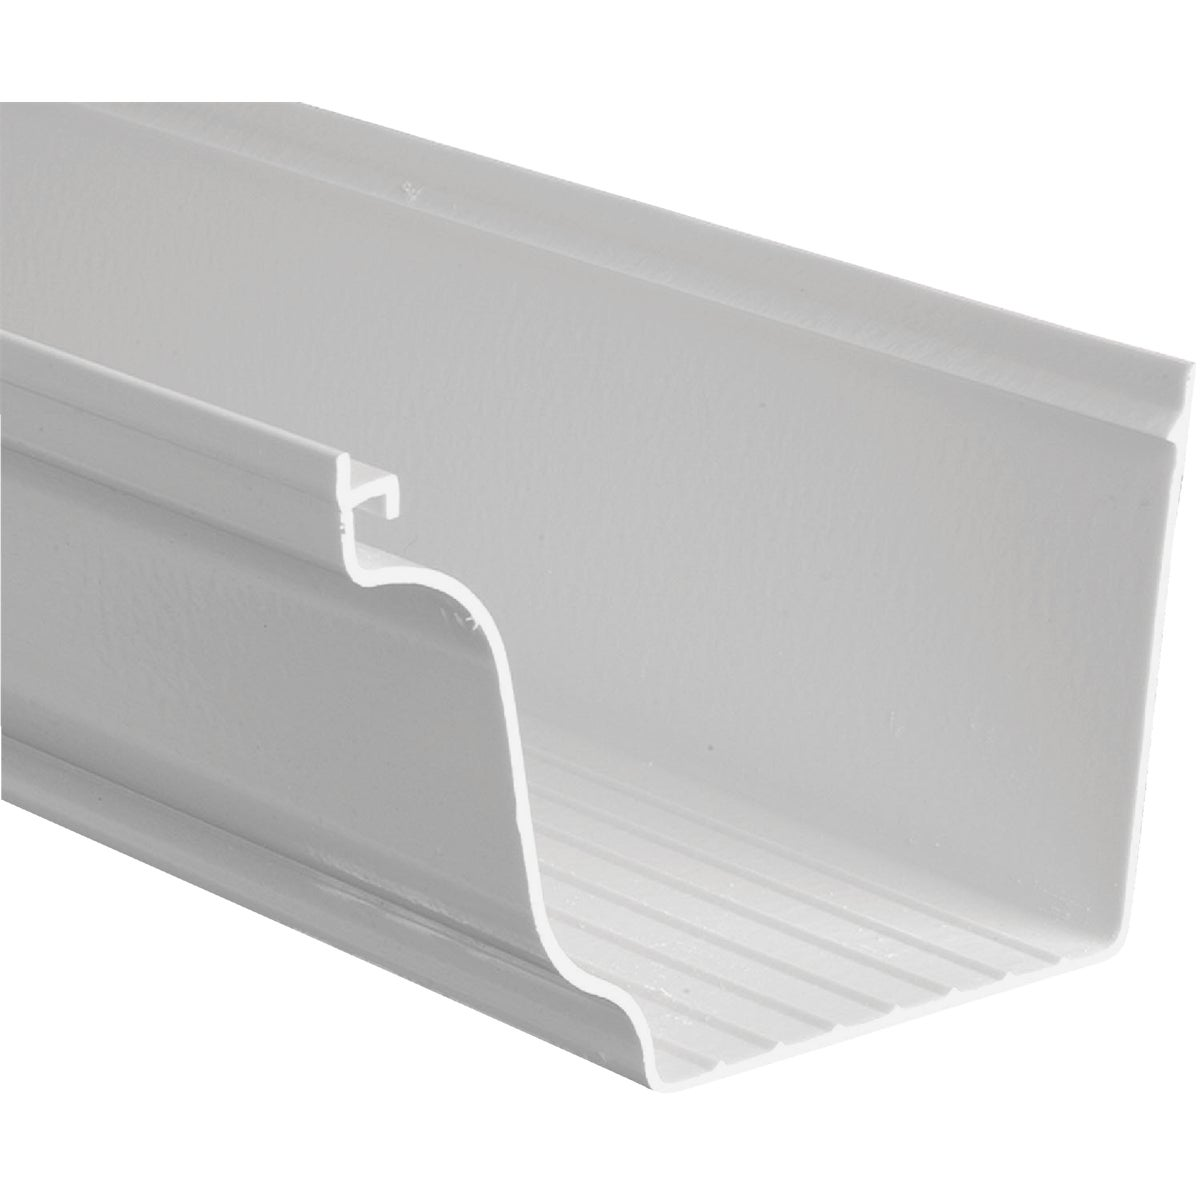 WHT REPLA-K GUTTER - AW100K by Genova Products